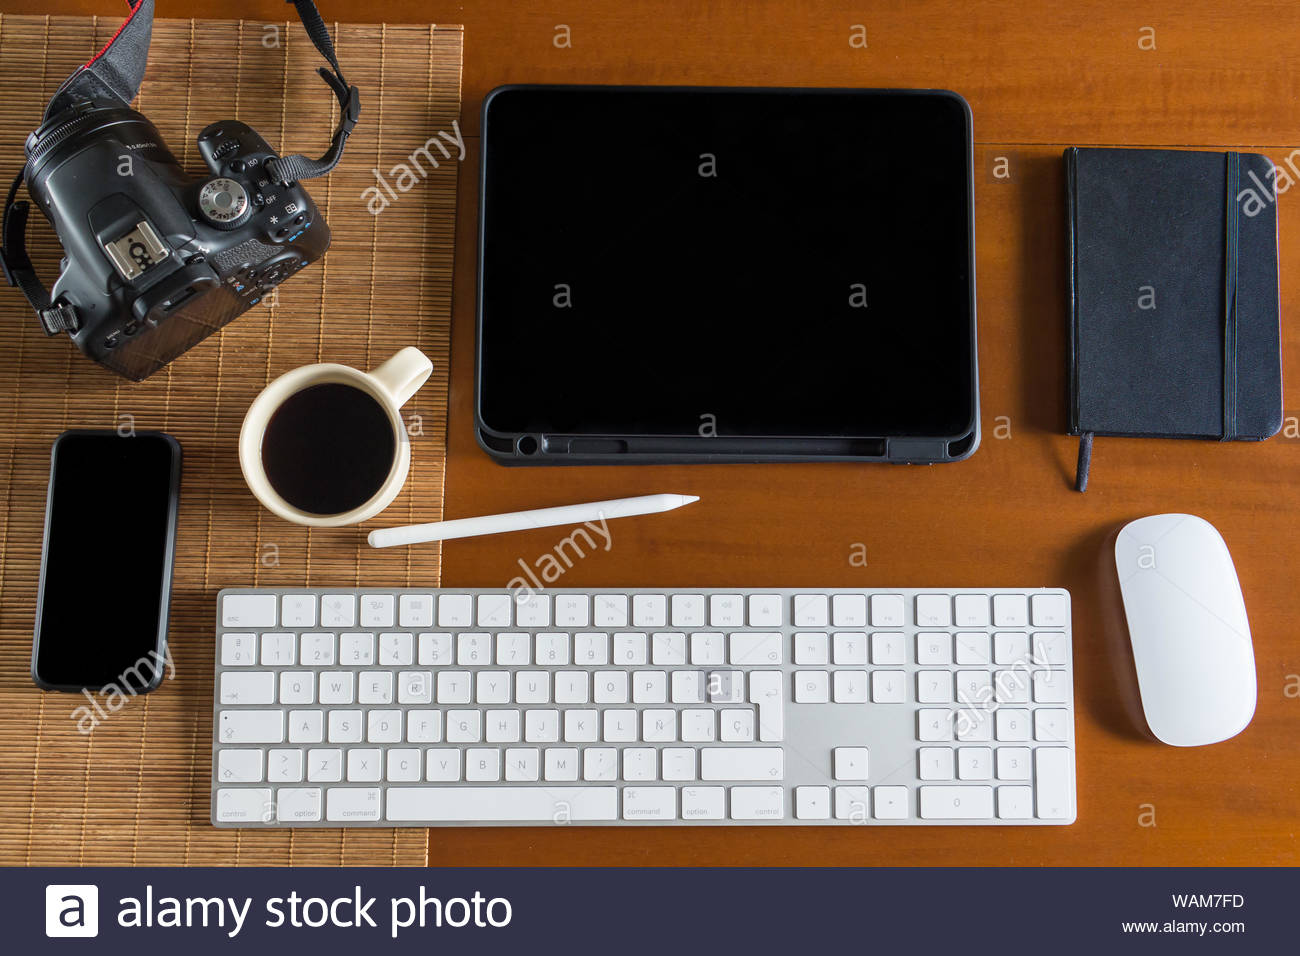 Brown Wood Office Desk Table And Equipment For Working And Editing Images With Black Coffee In Top View And Flat Ray Concept Stock Photo Alamy